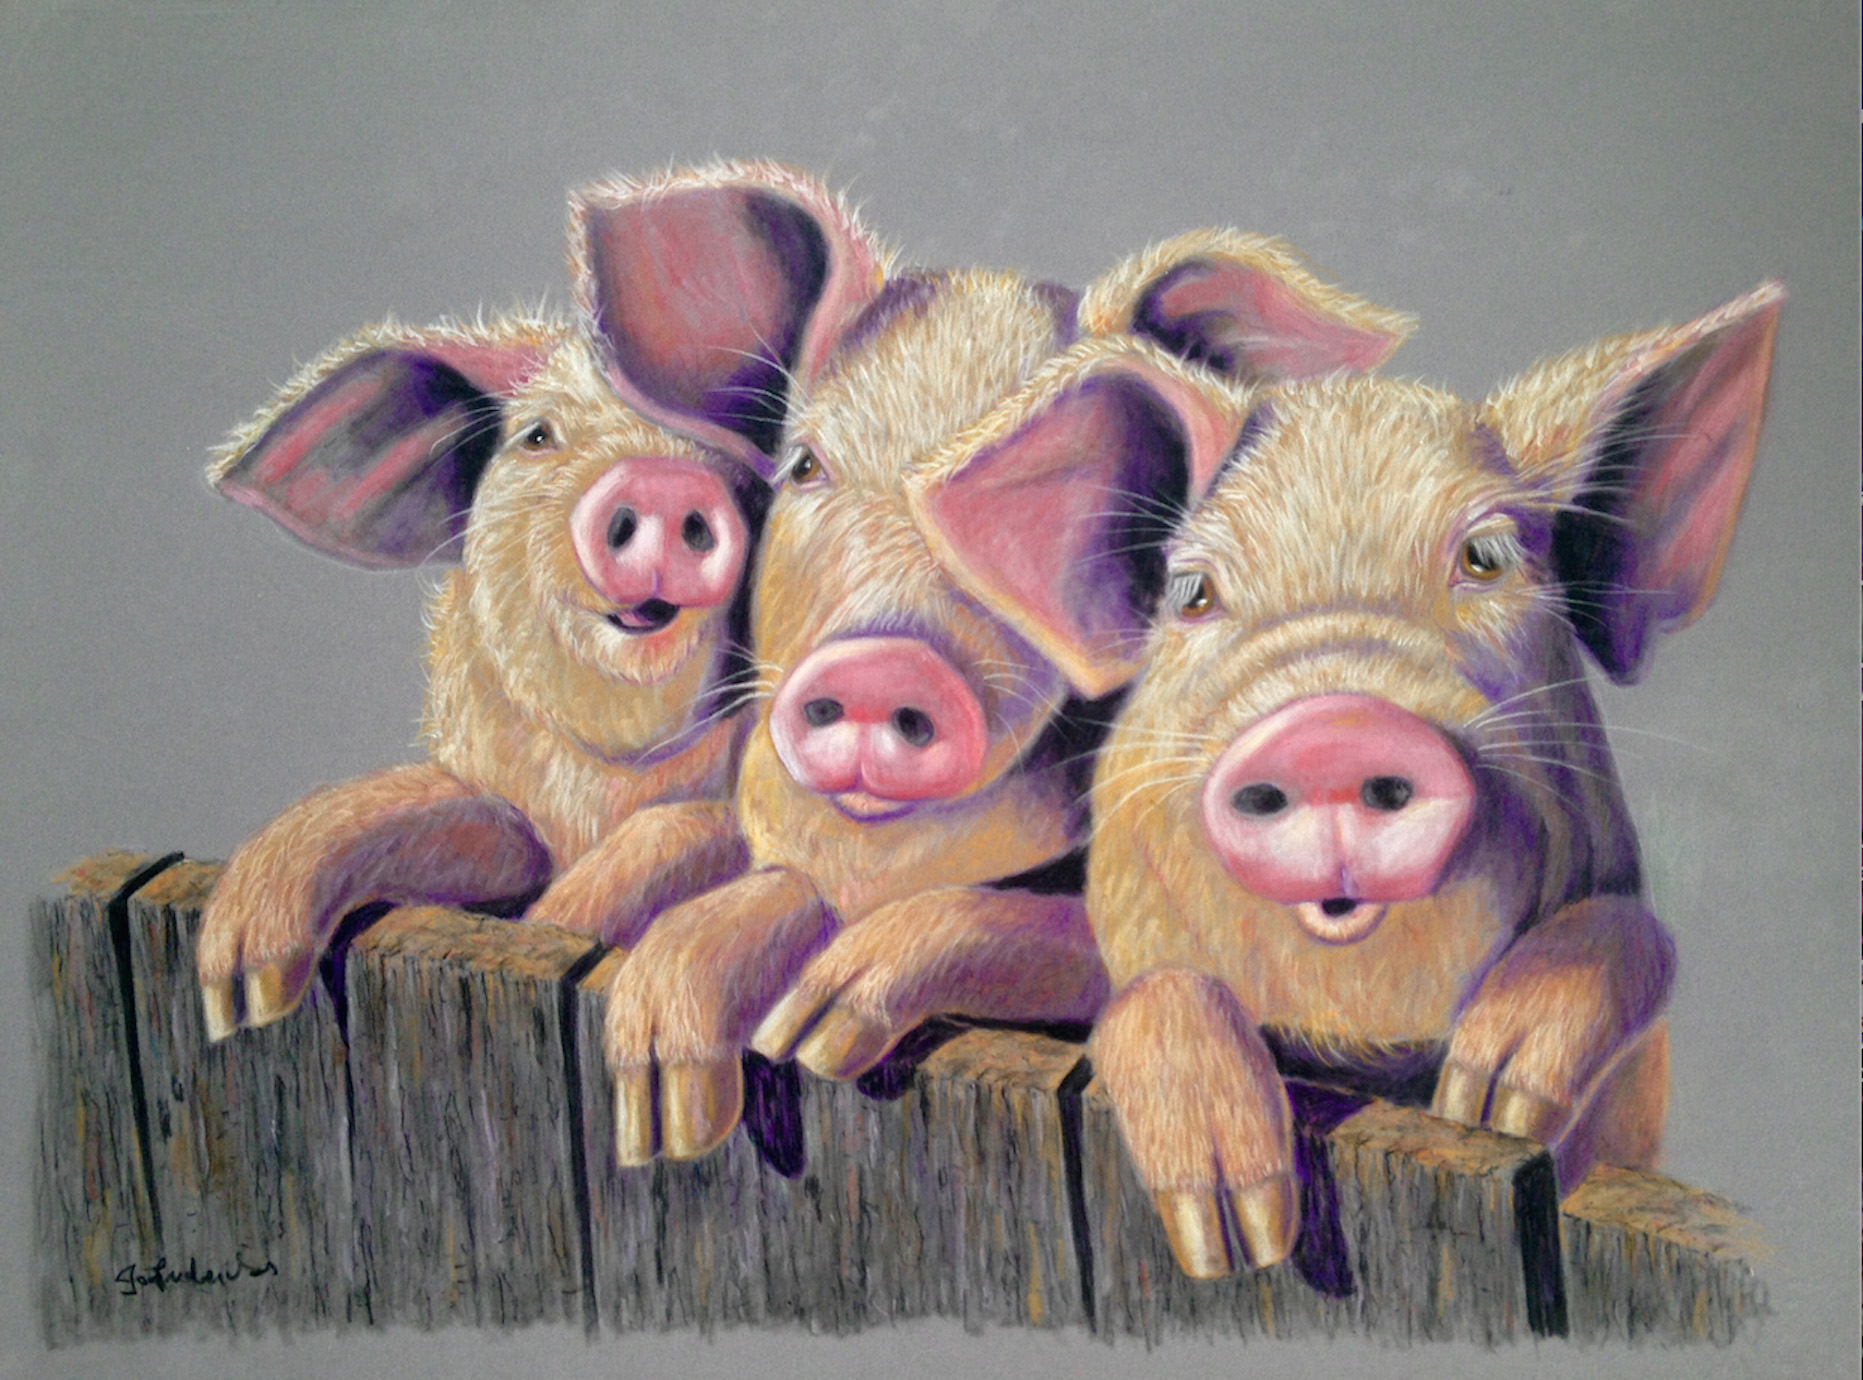 Three Little Pigs - raffle prize